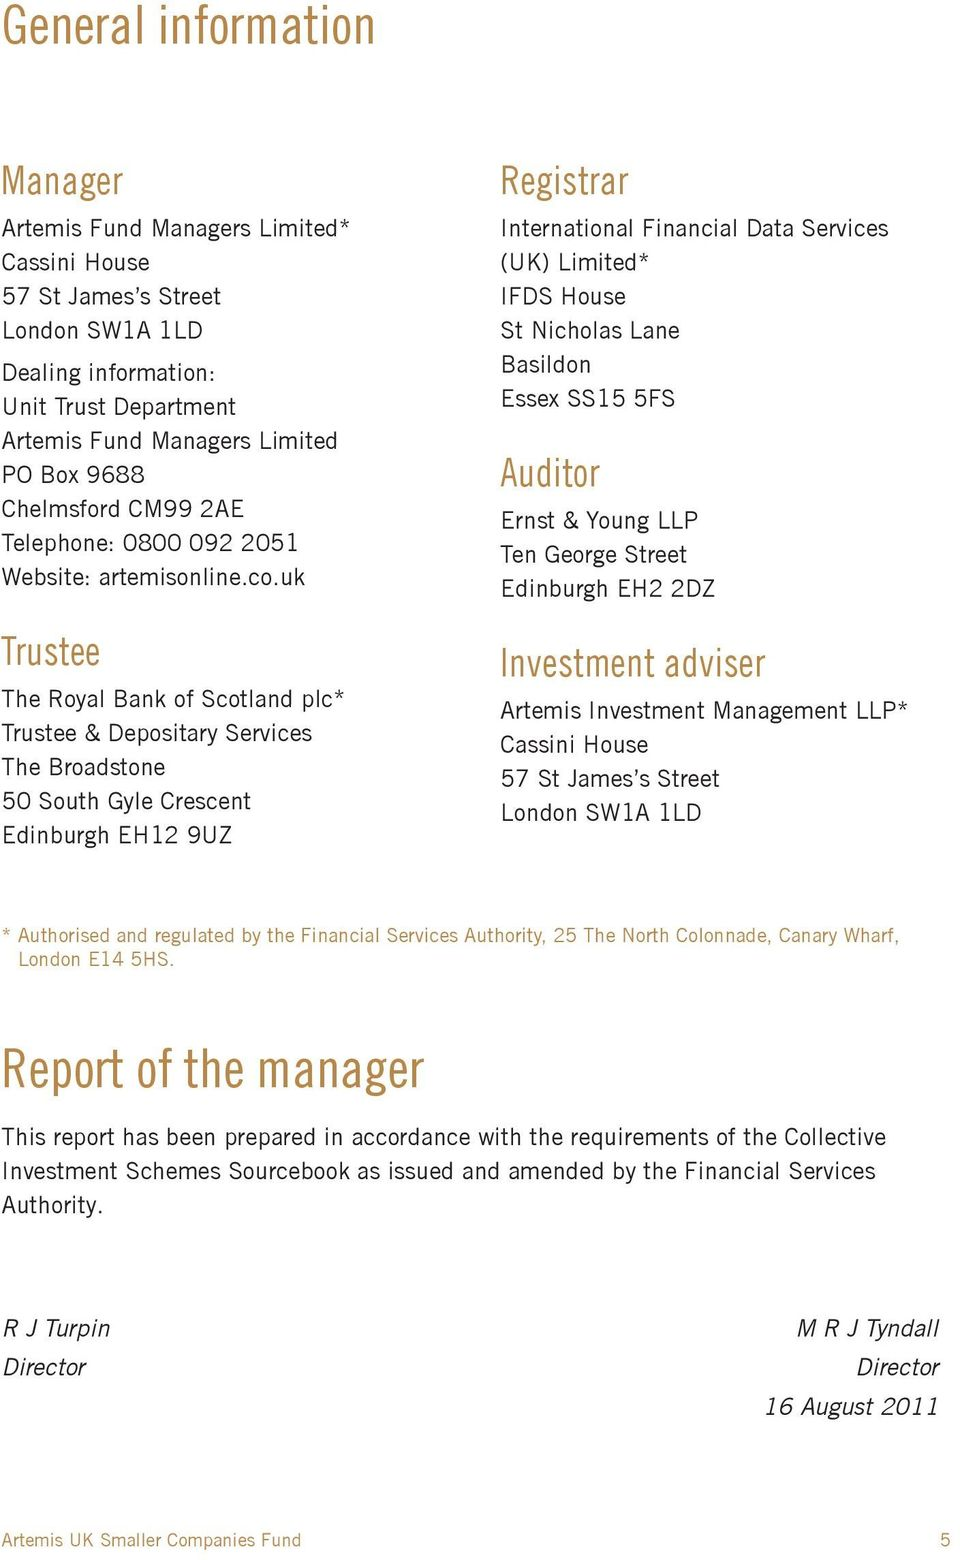 uk Trustee The Royal Bank of Scotland plc* Trustee & Depositary Services The Broadstone 50 South Gyle Crescent Edinburgh EH12 9UZ Registrar International Financial Data Services (UK) Limited* IFDS